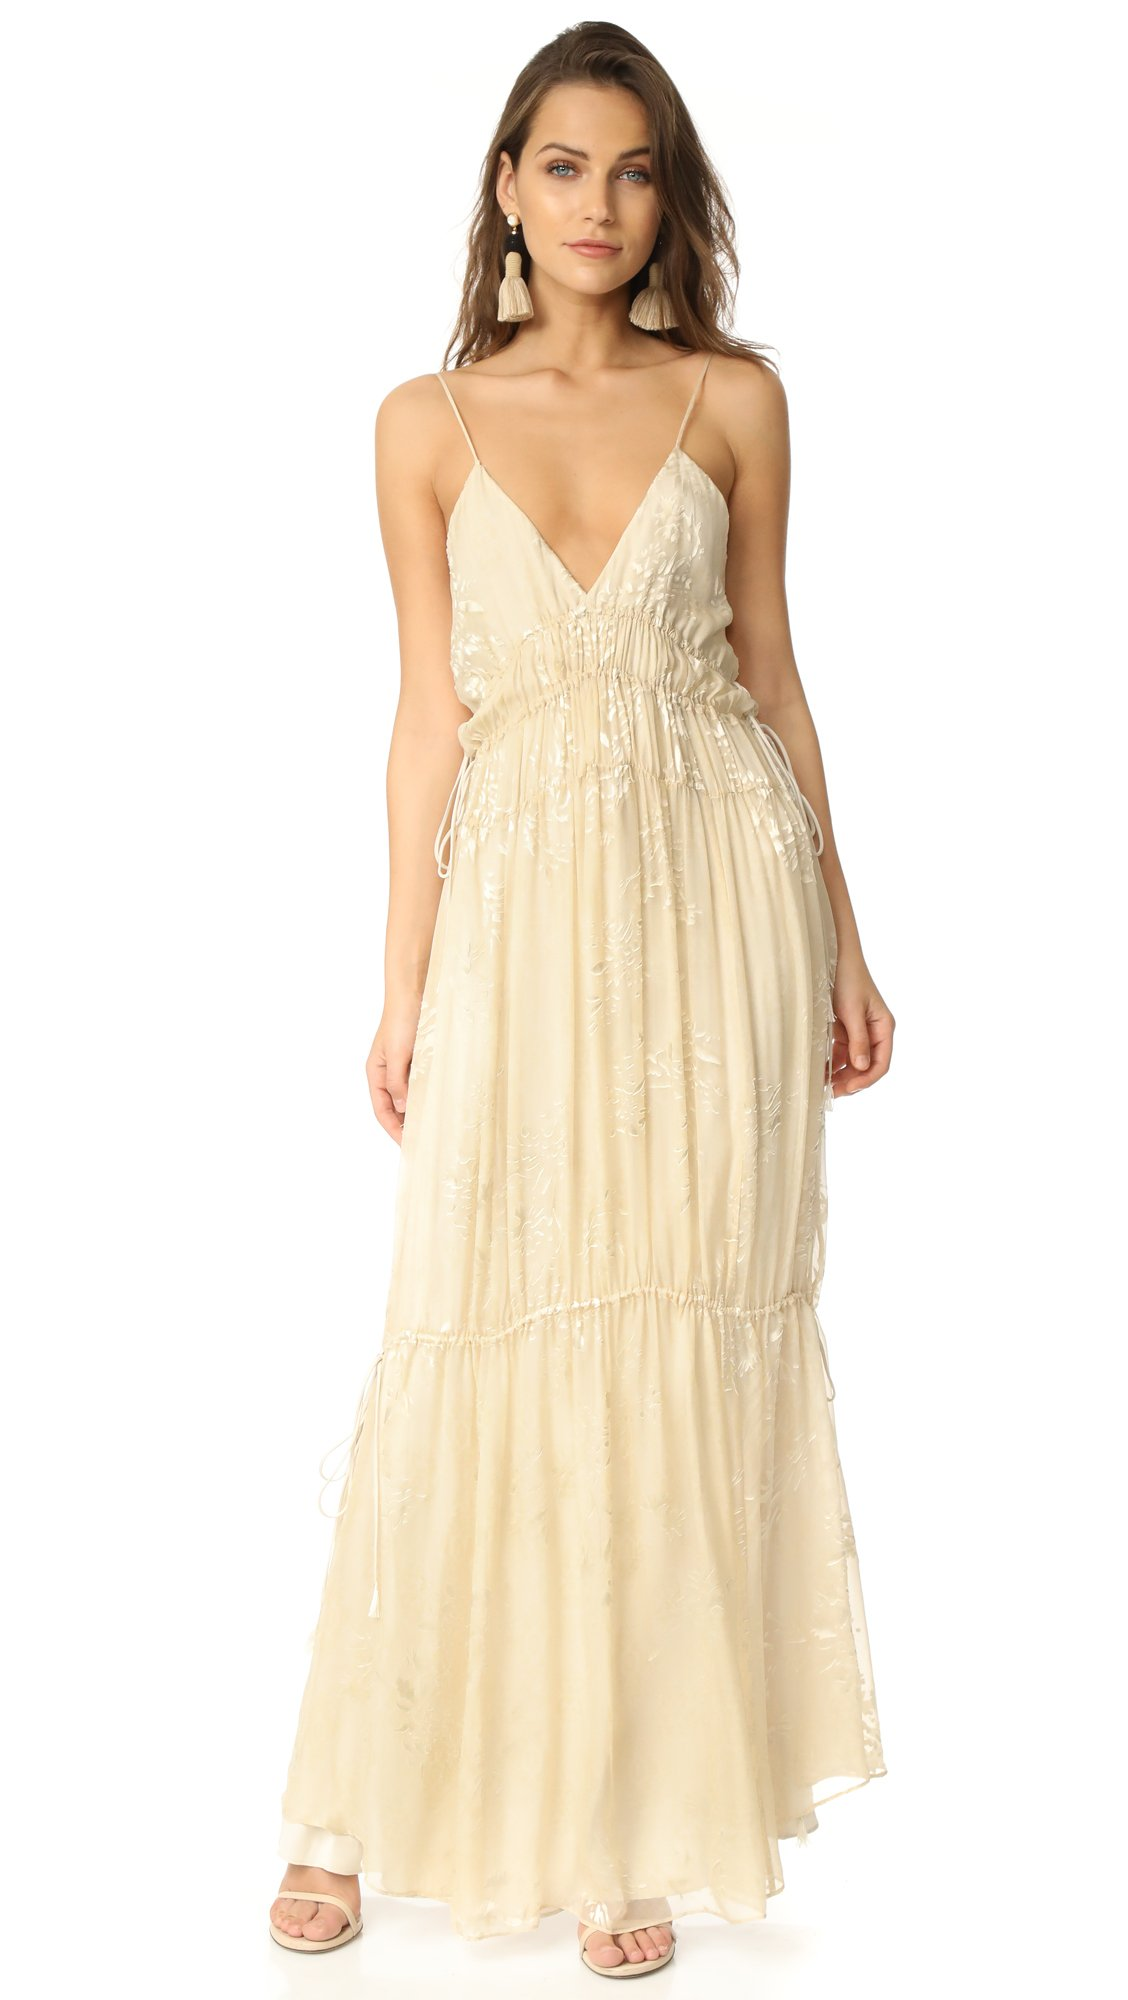 Available at Amazon: Haute Hippie Women's Elixr Gown